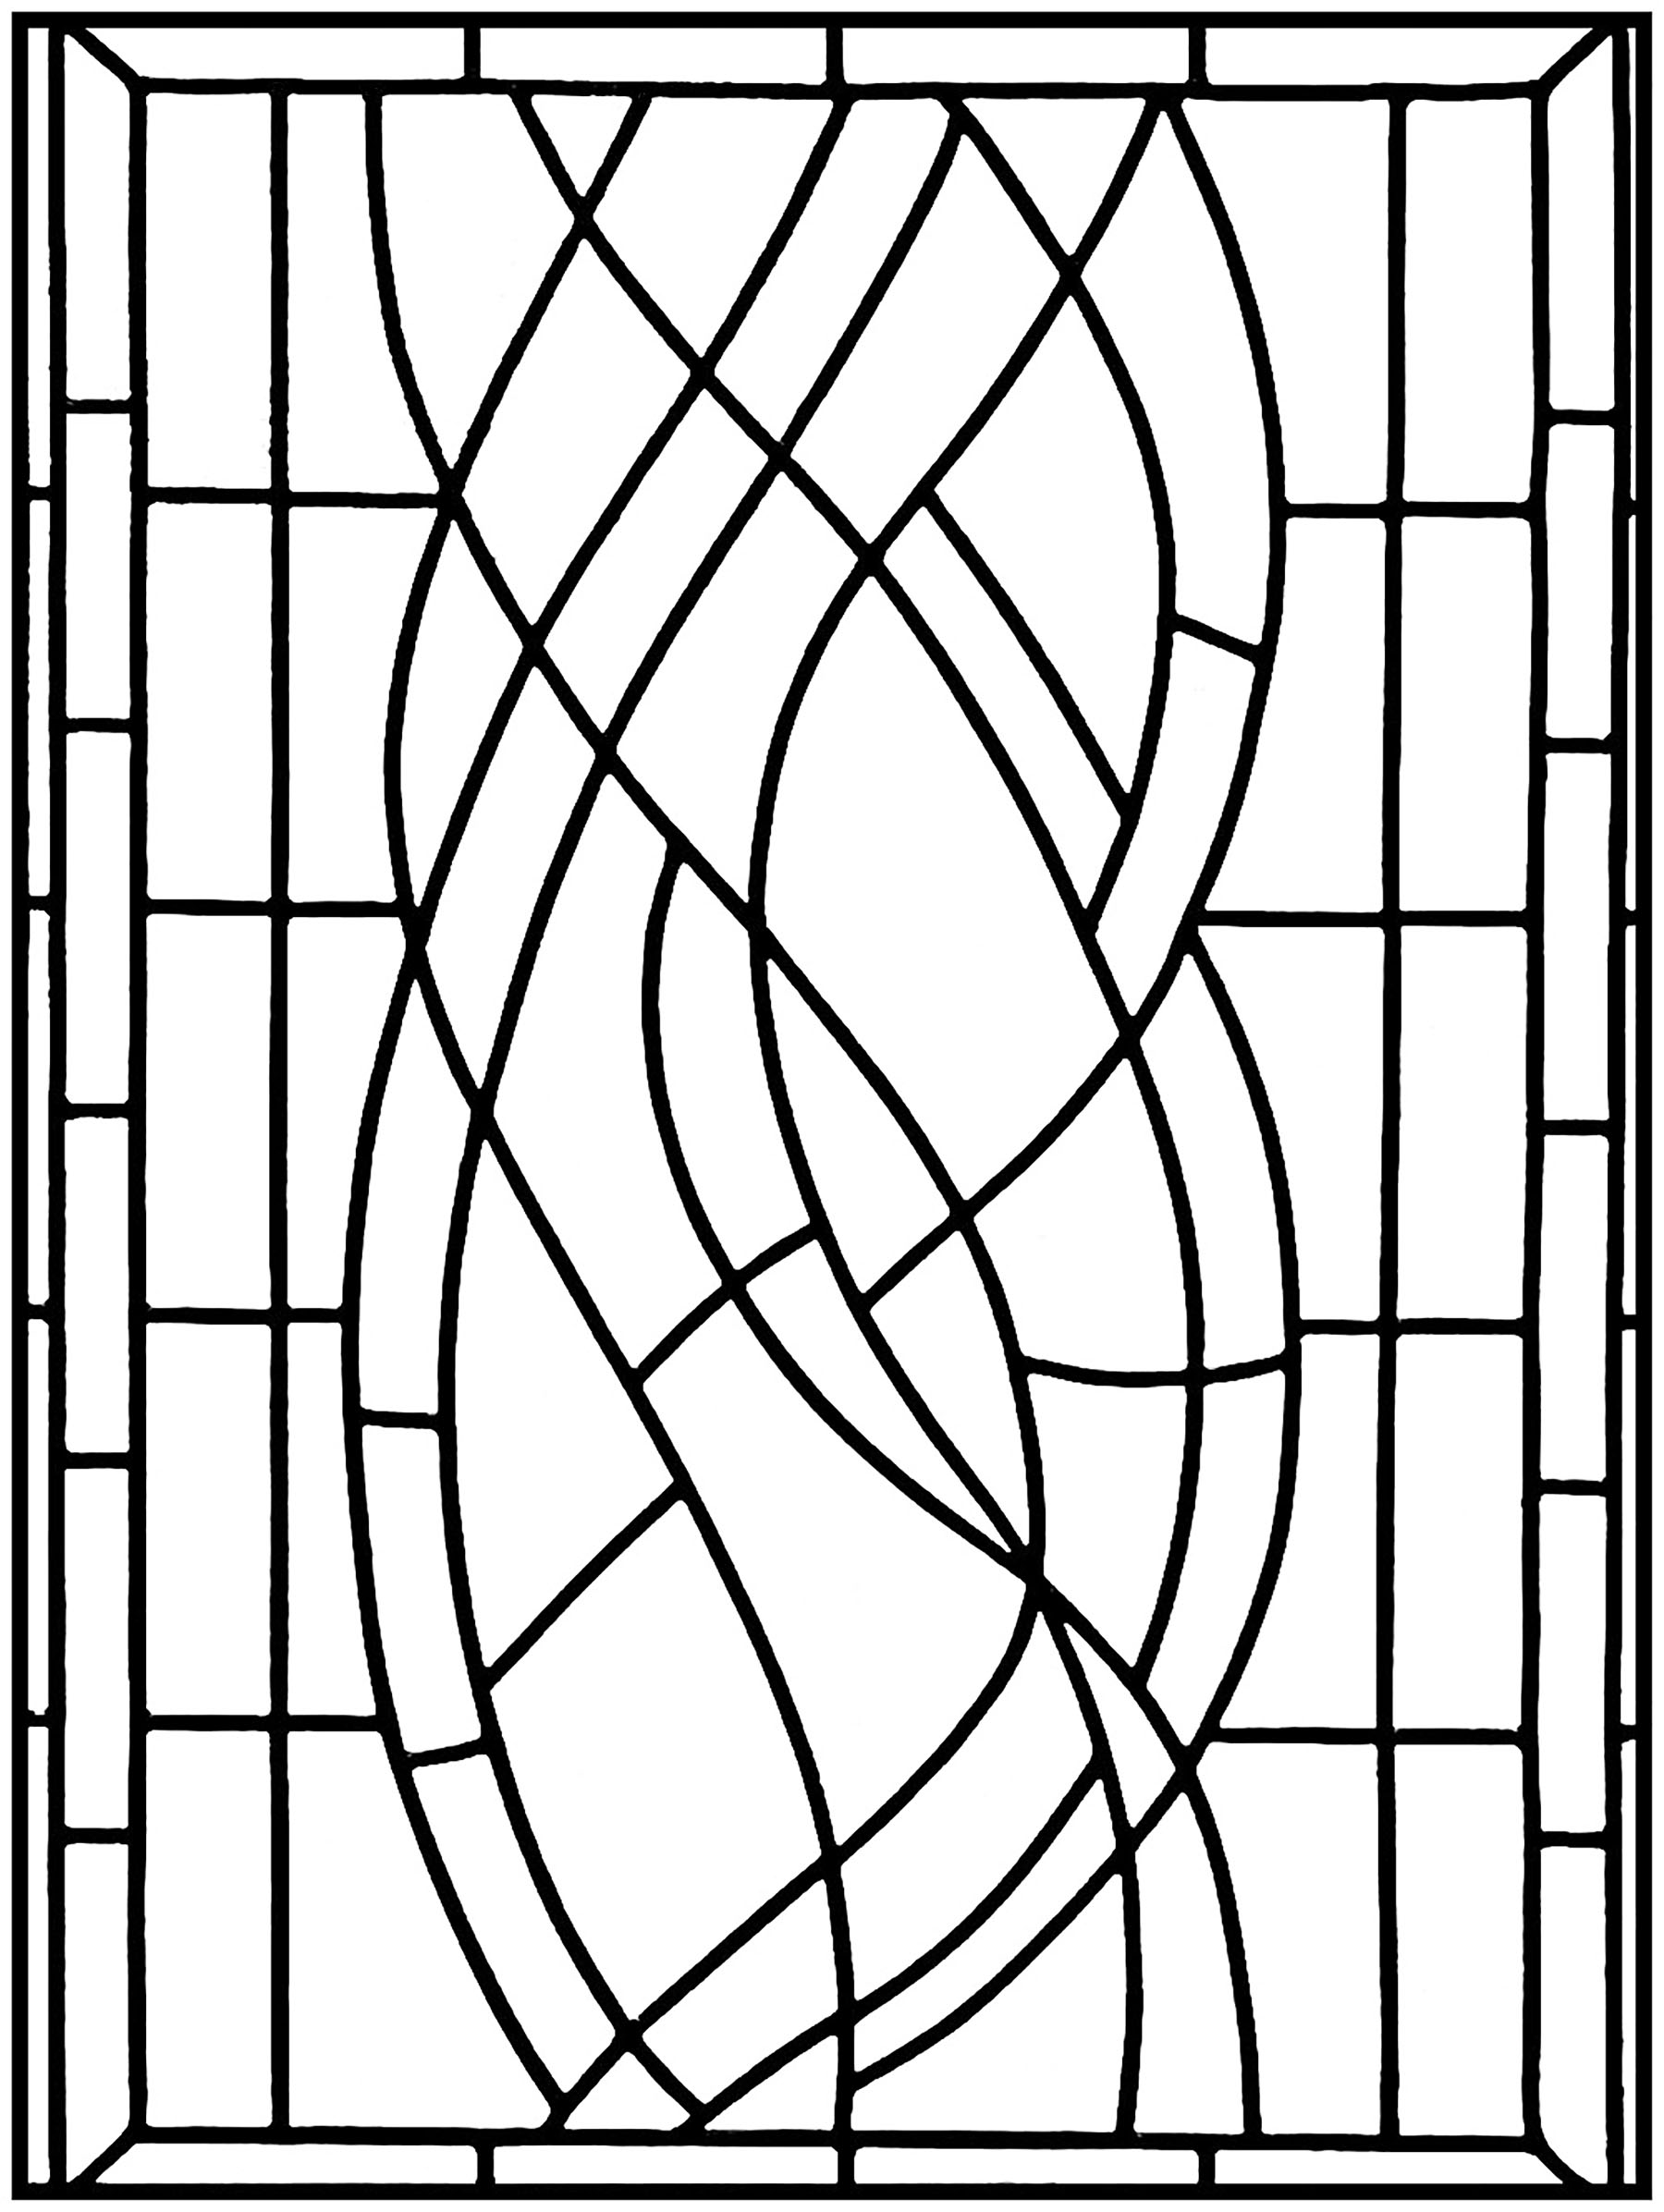 stained glass coloring pages for adults stained glass coloring pages for adults best coloring for glass stained adults coloring pages